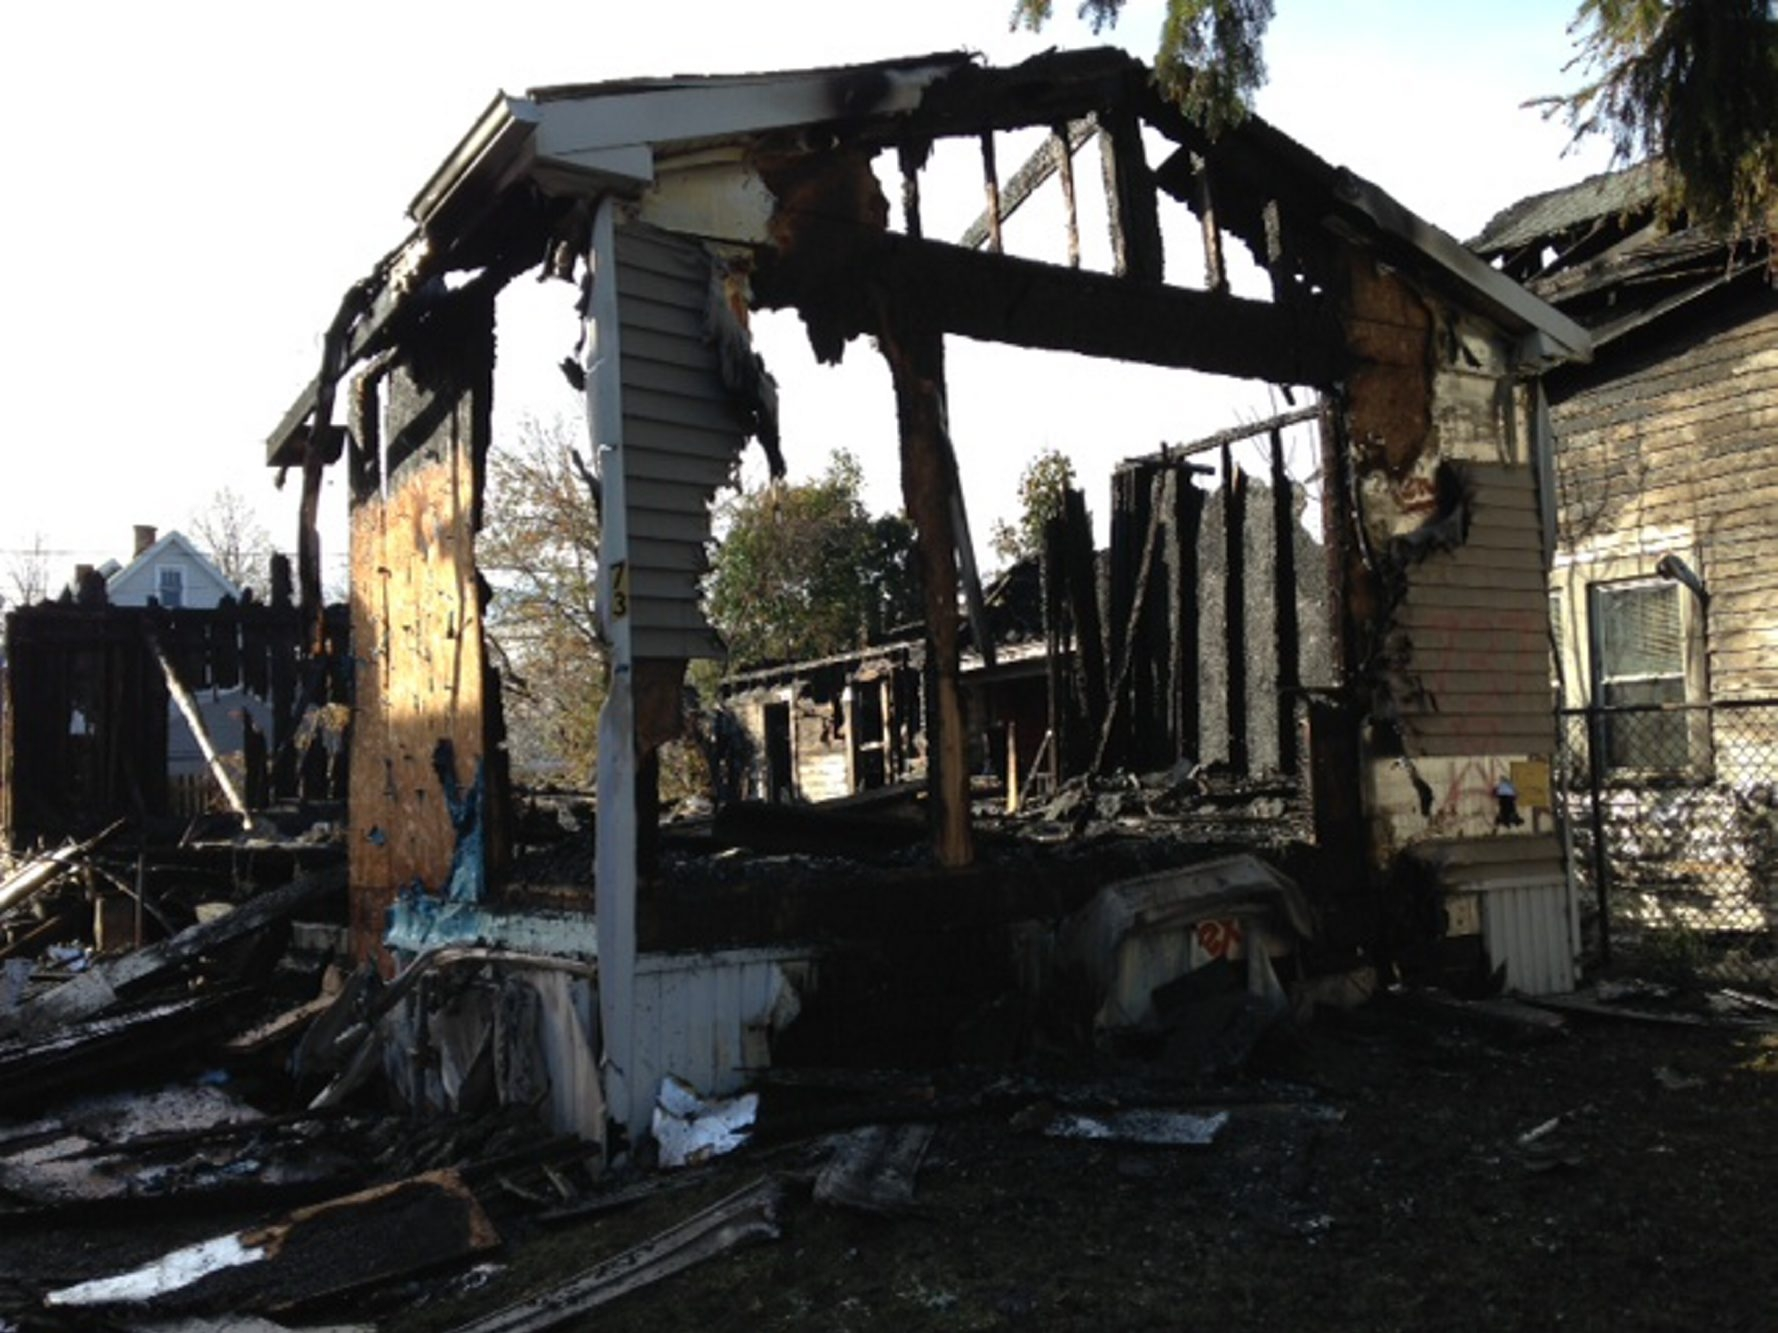 A fire early today gutted this vacant house at 737 North Division St. and heavily damaged homes on either side.